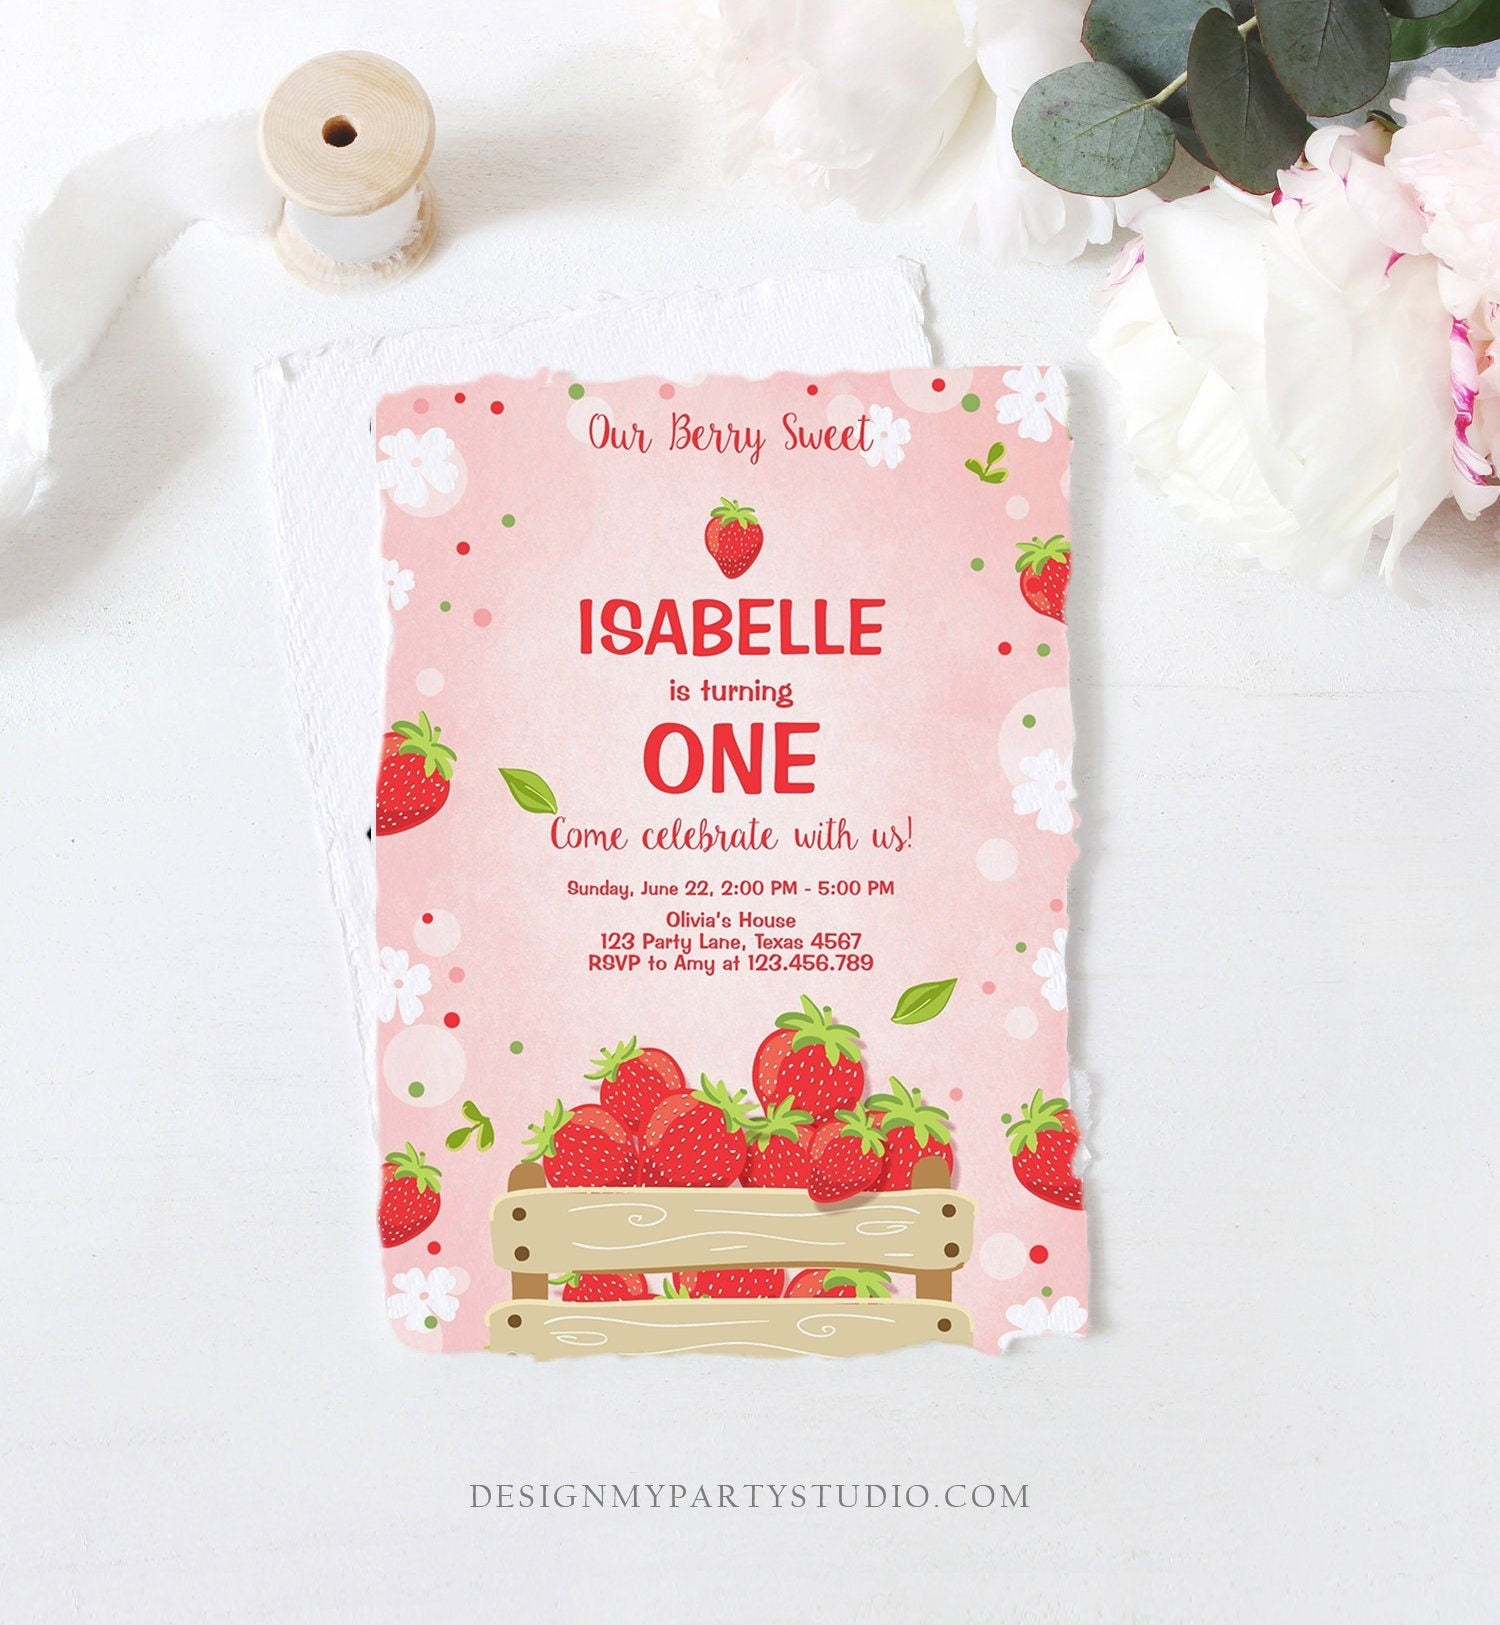 Editable Strawberry Birthday Invitation Berry Sweet Girl Farmers Market Download Printable Invitation ANY AGE Template Digital Corjl 0091